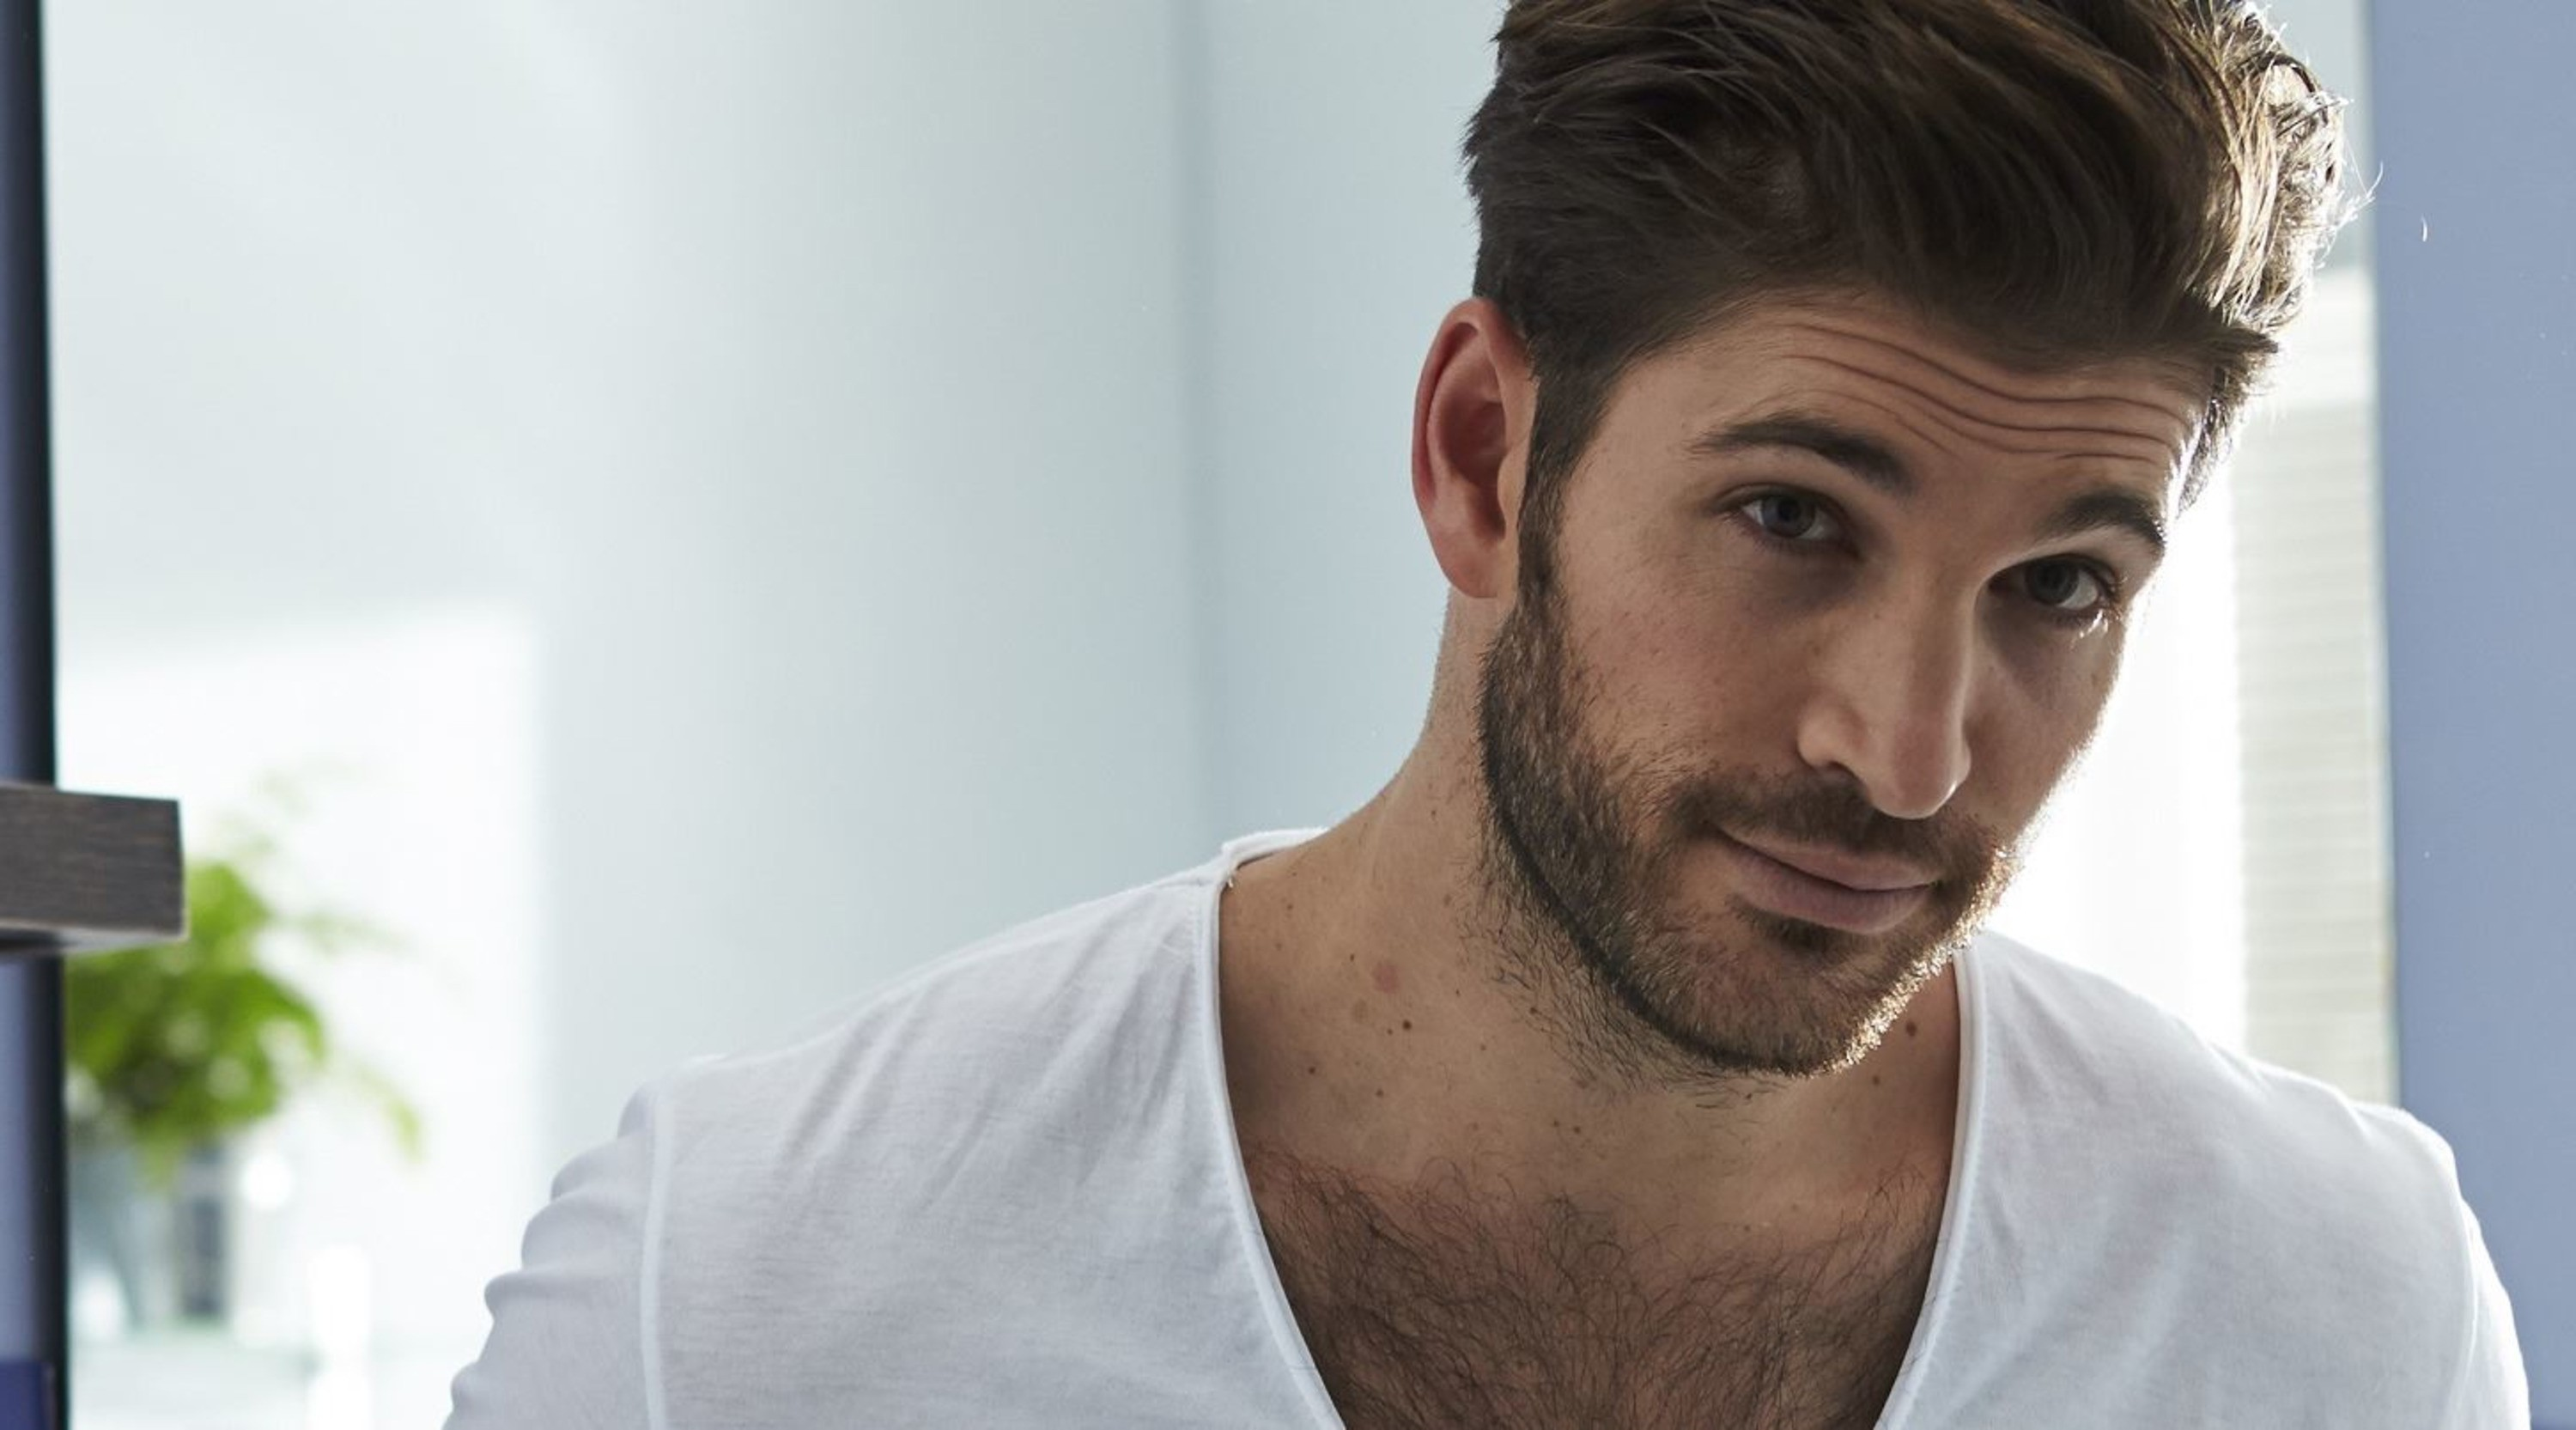 A 5-day stubble beard for cool men.